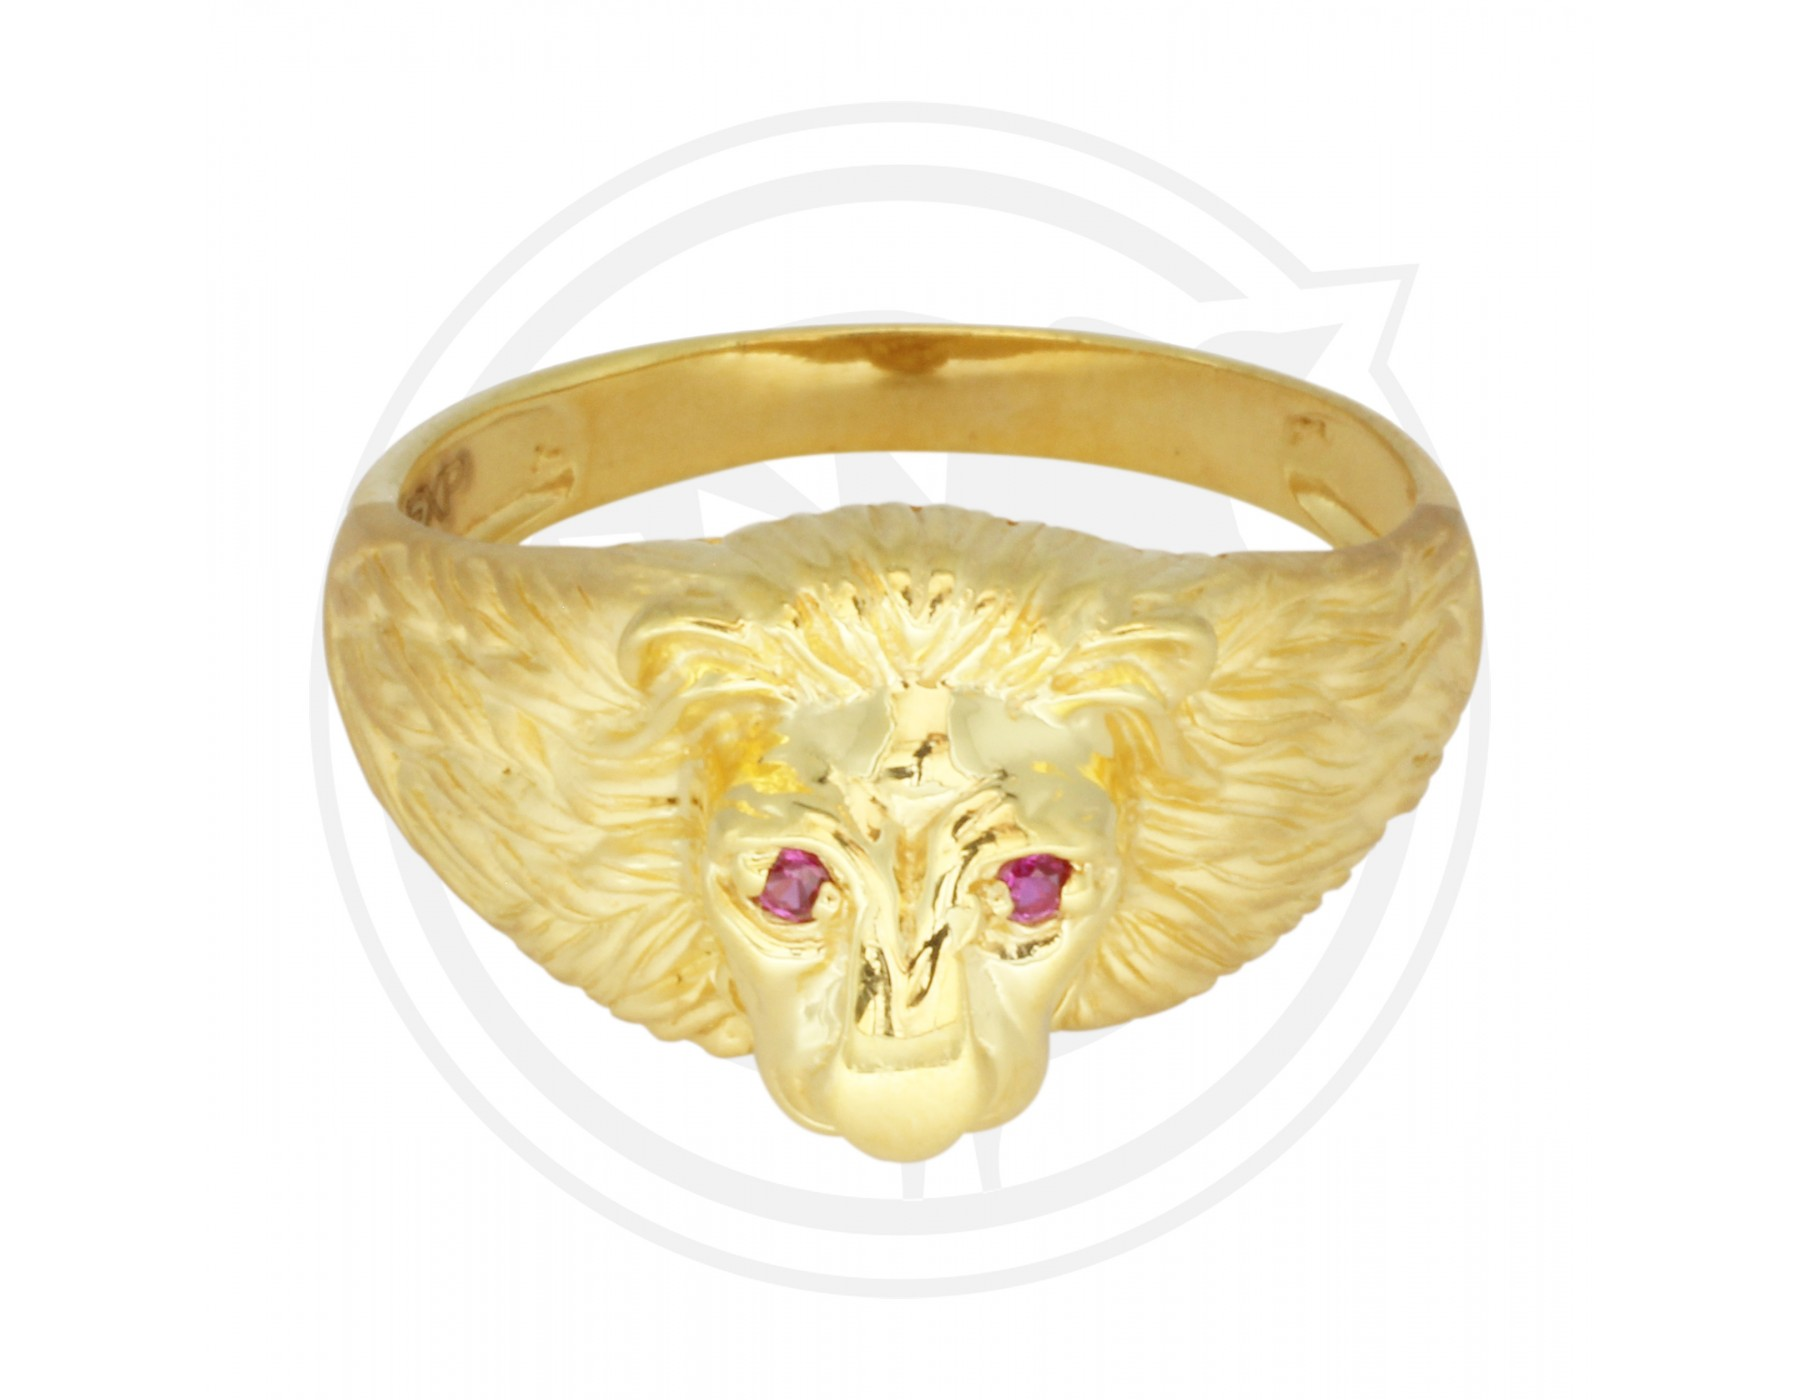 leo x of s item men punk huge lion from fashion ring steel gift head mas silver animal tone face in biker king gold stainless jewelry rings